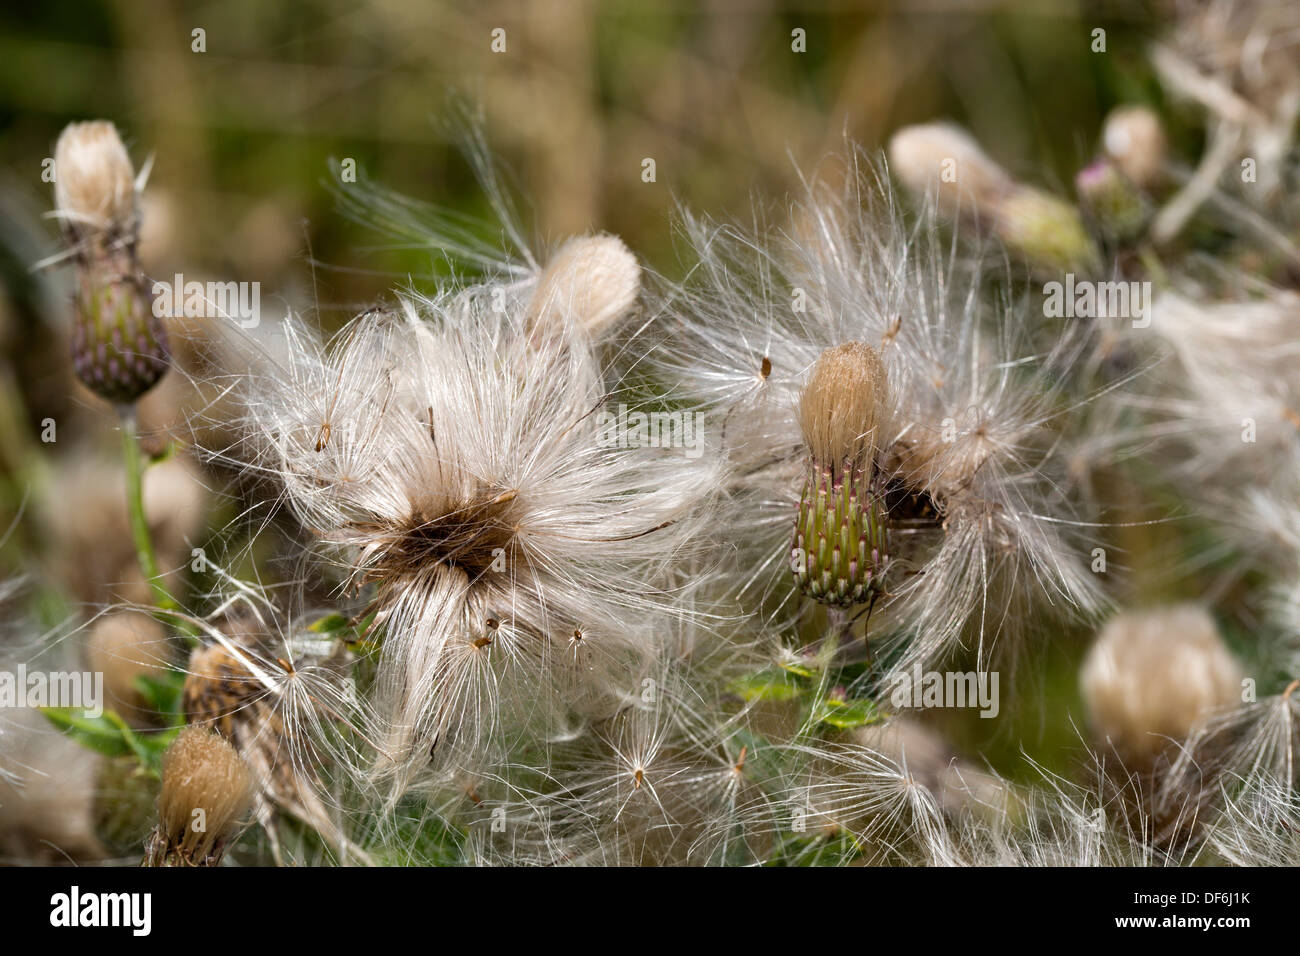 Thistle Seed Heads; UK - Stock Image